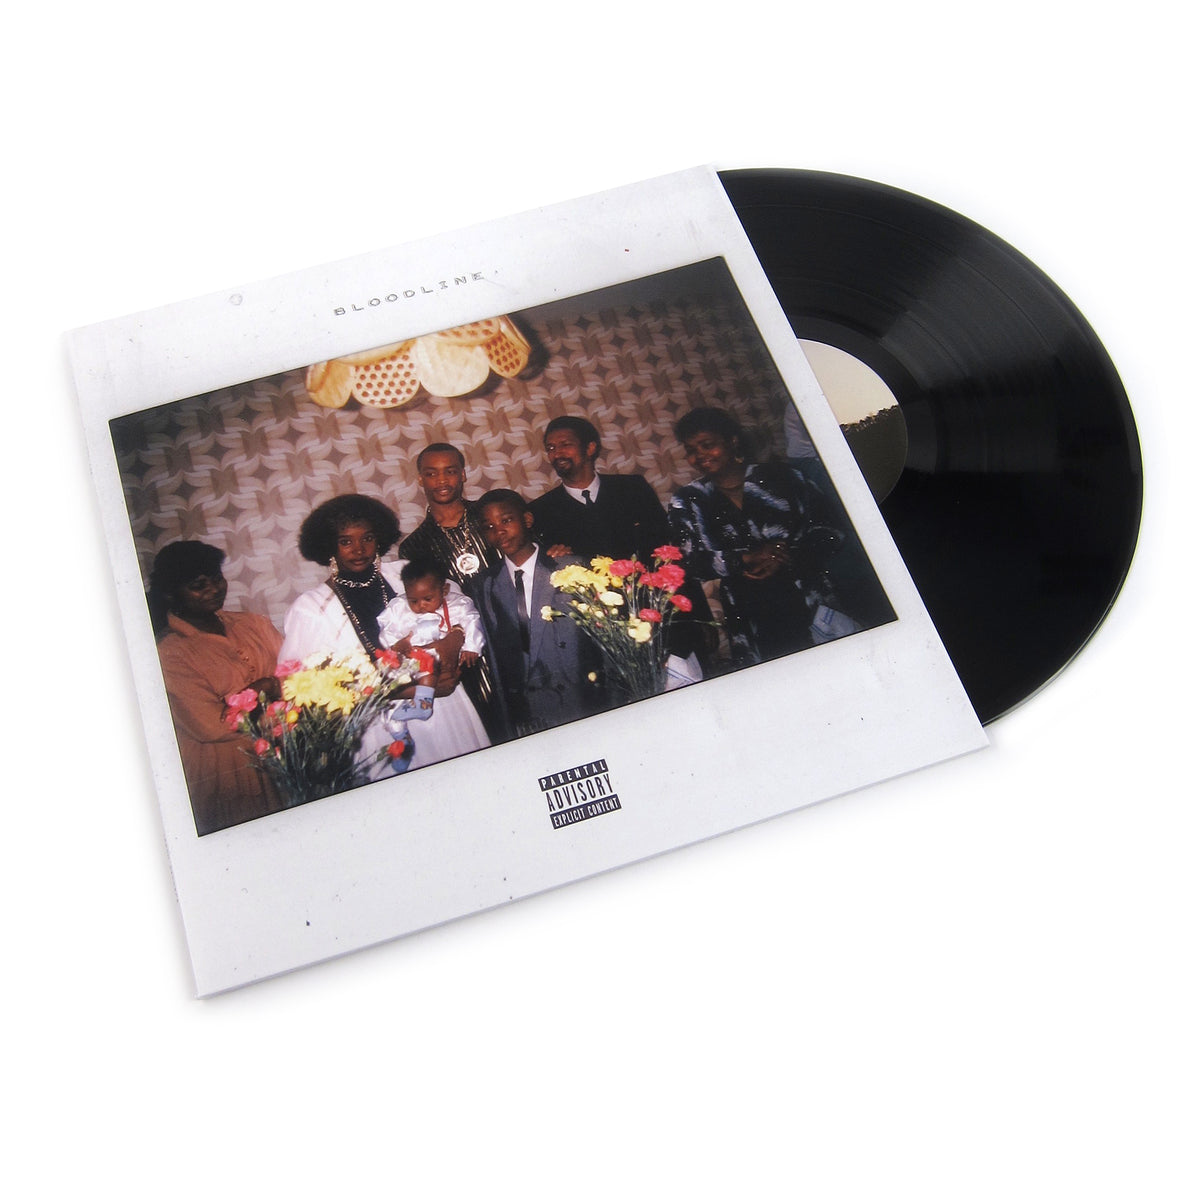 Steven Julien: Bloodline Vinyl LP